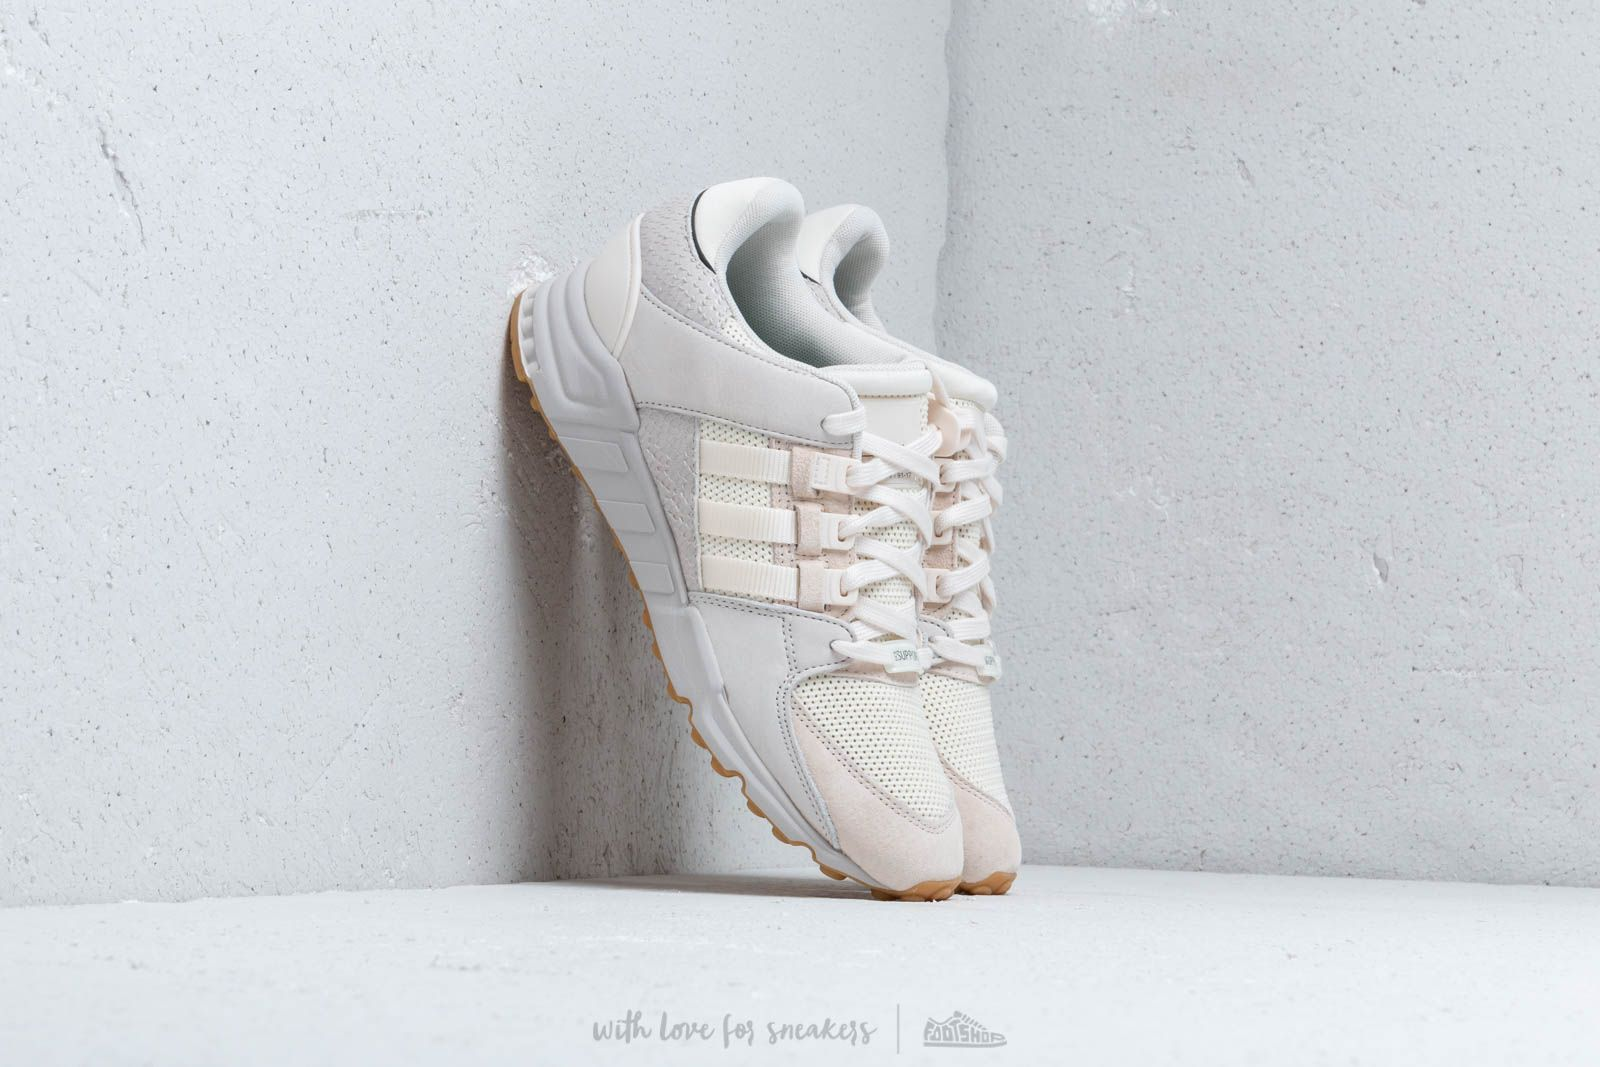 reputable site 4dd7f 9fdc7 adidas EQT Support RF Chalk White Chalk White Gum at a great price 128